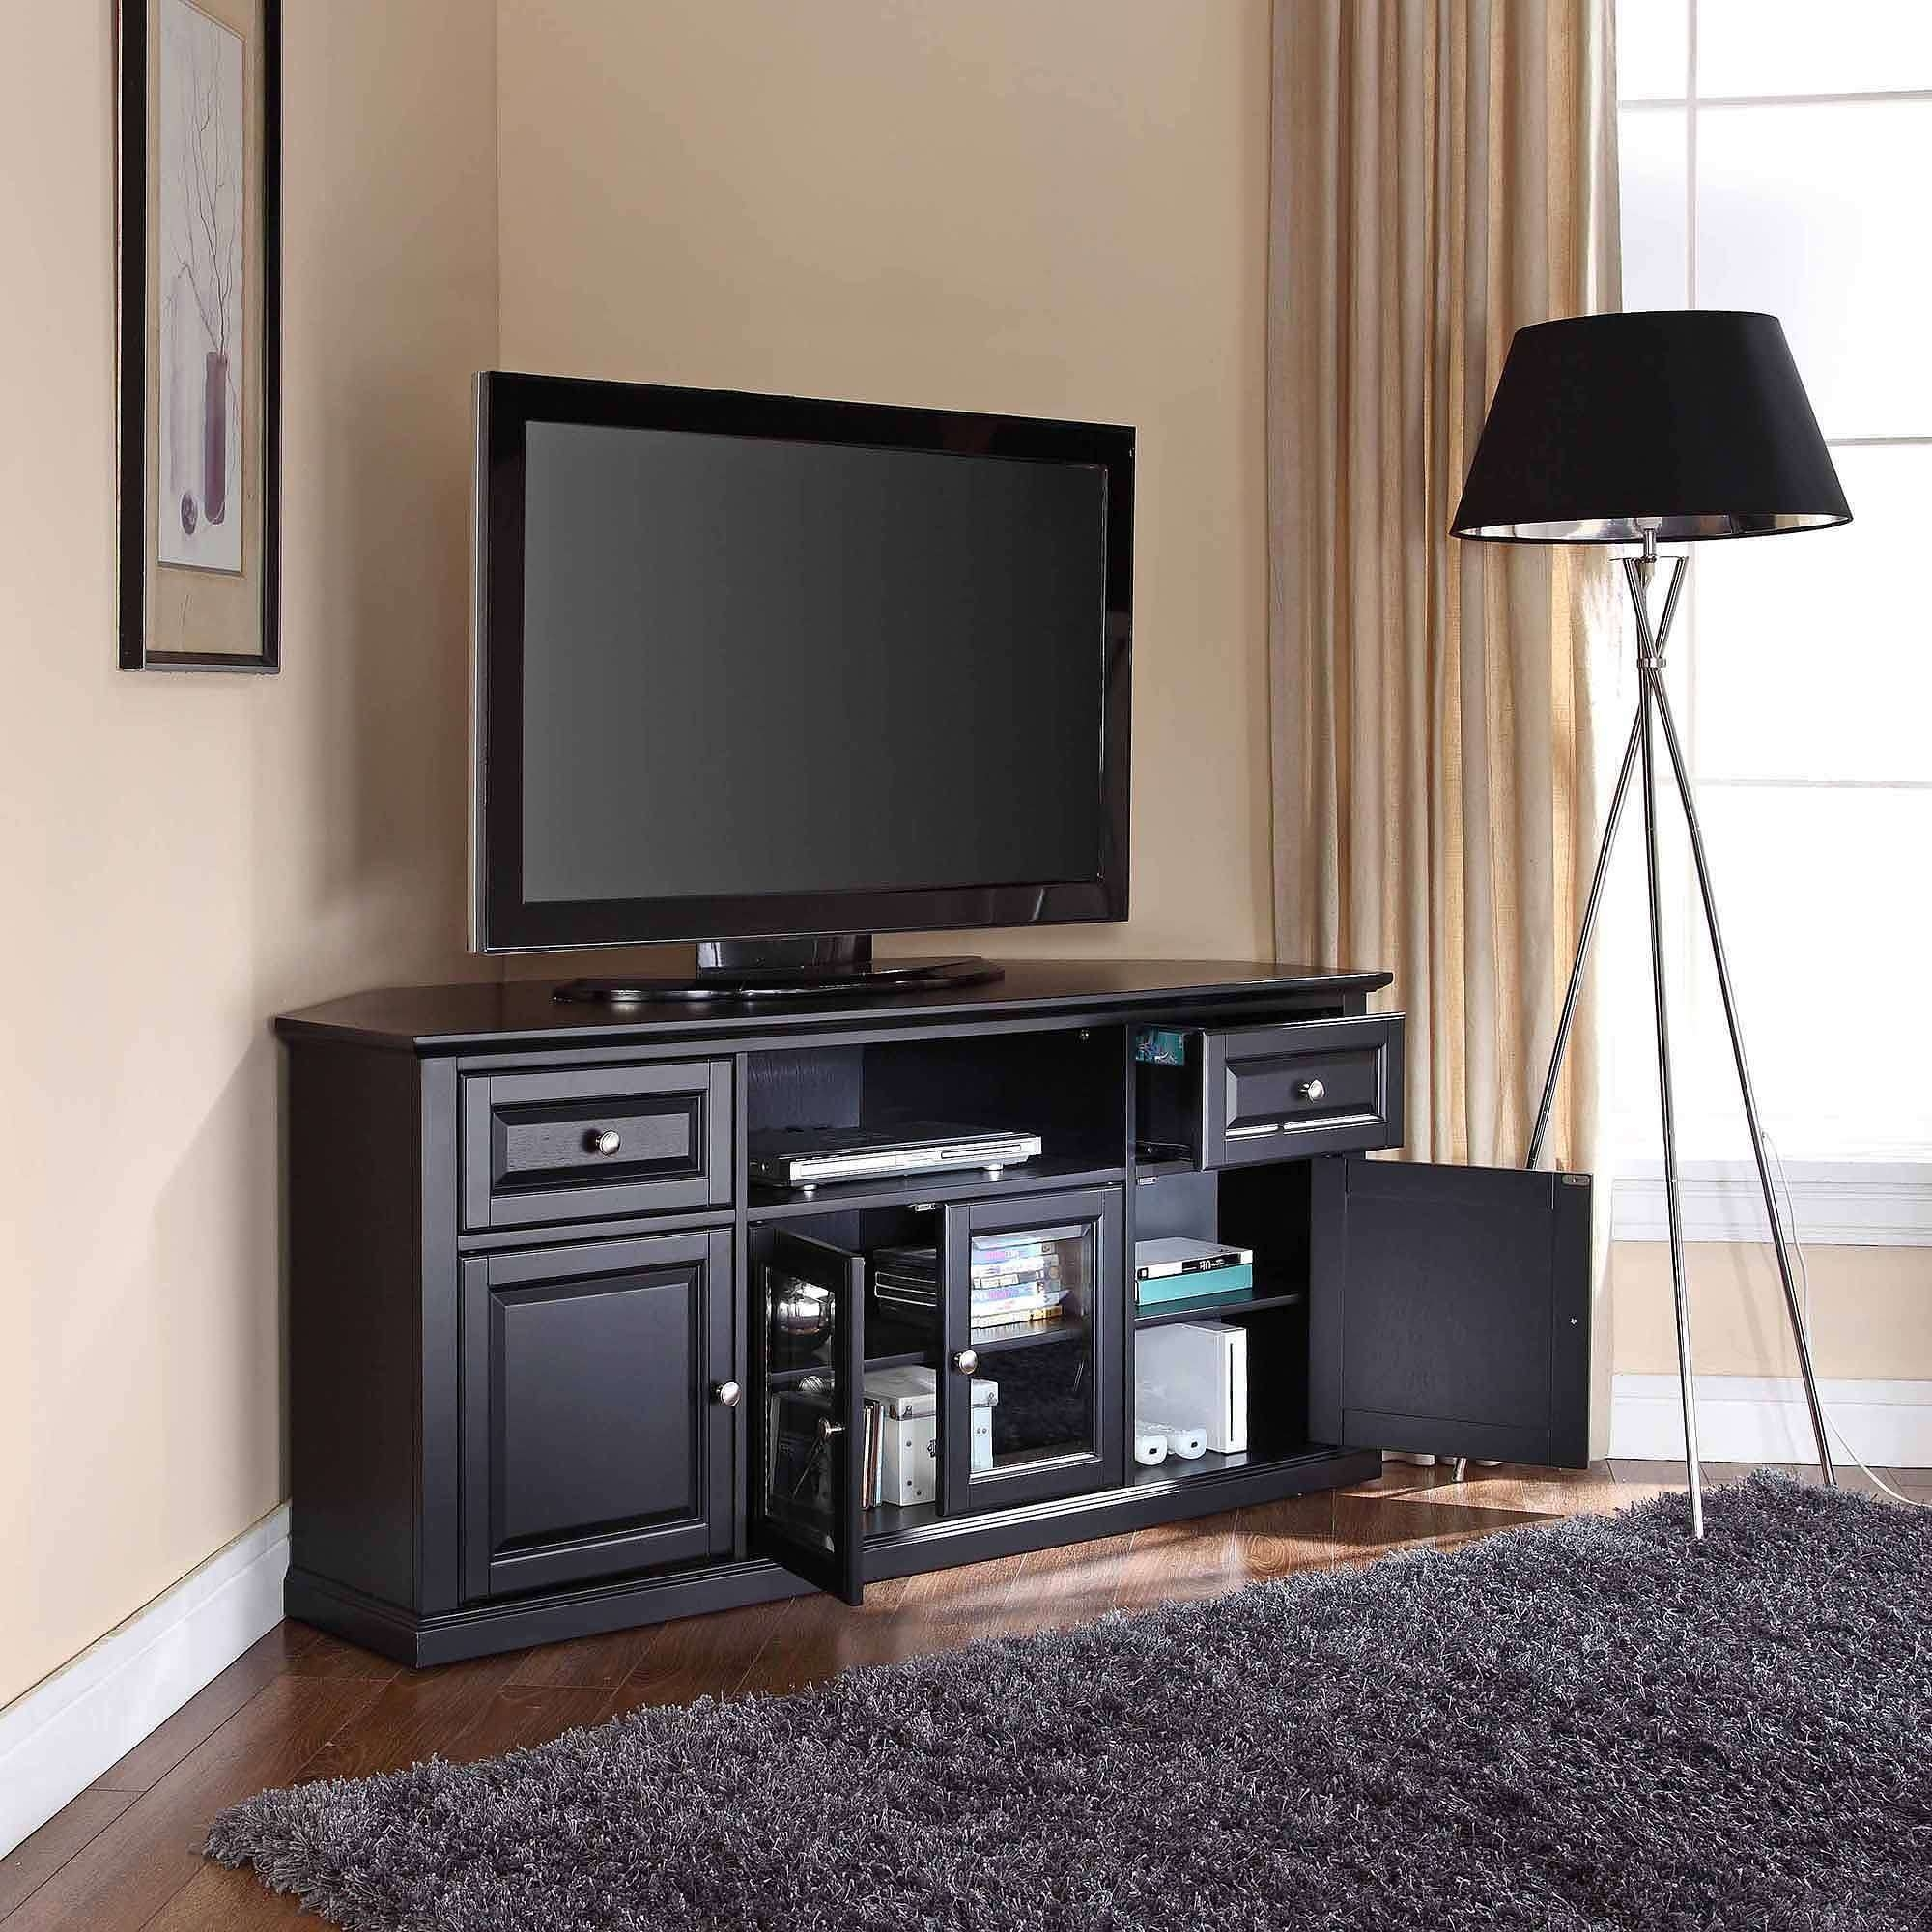 Tv : Gratifying Corner Tv Stands 40 Inch Flat Screen Top 40 Inch With Corner Tv Stands 40 Inch (View 11 of 20)